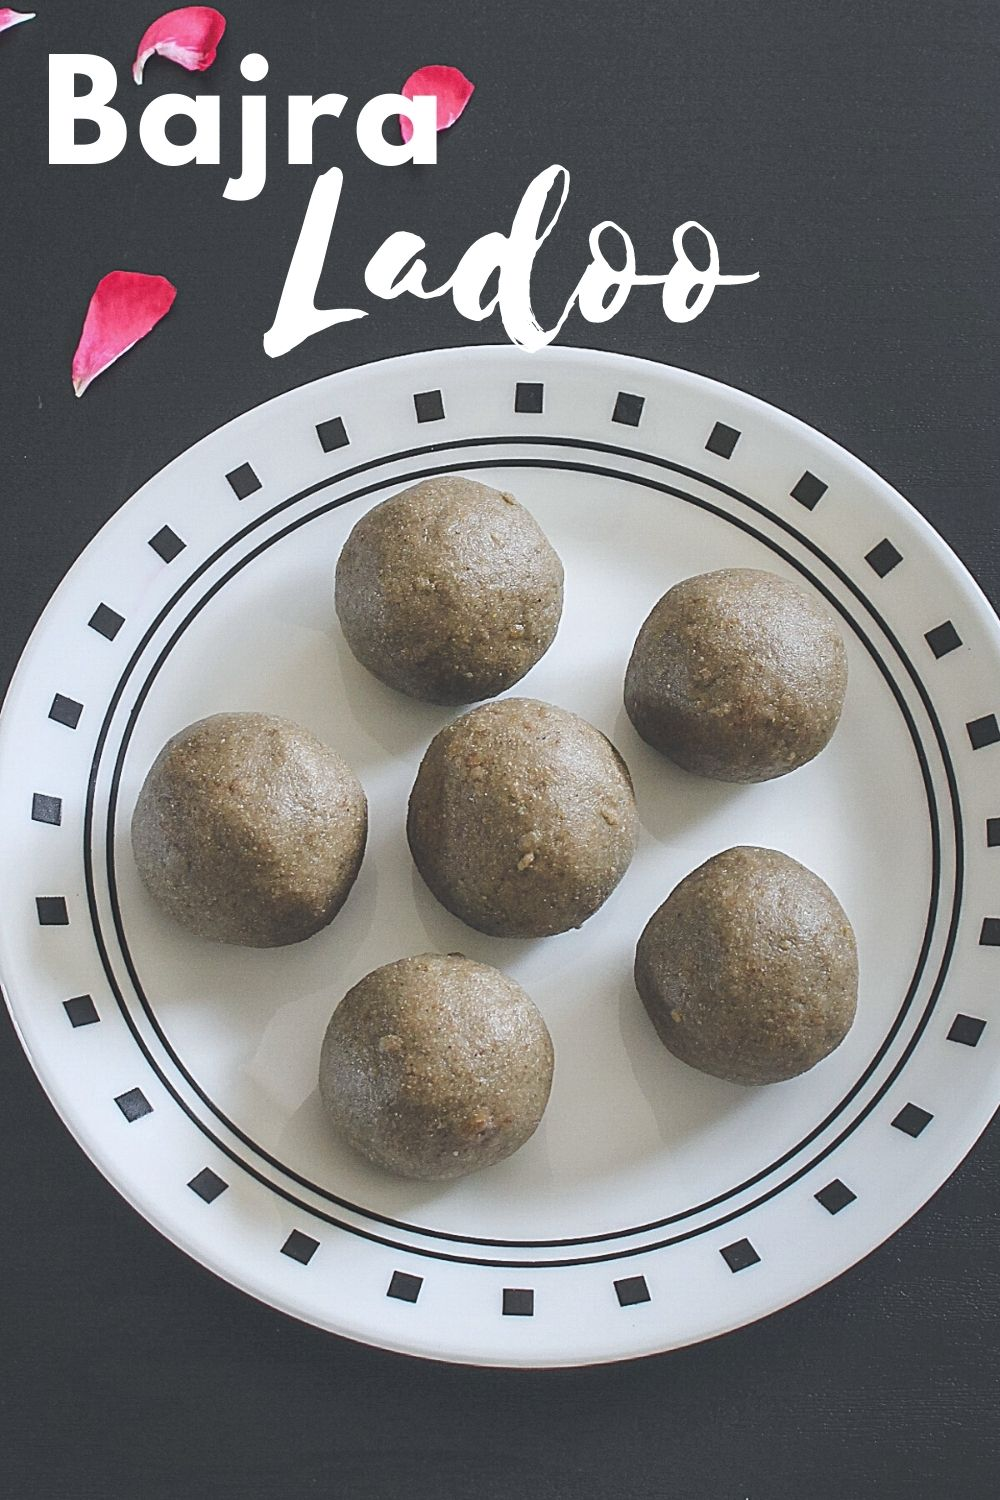 6 bajra ladoo on a plate with text 'bajra ladoo' for pinterest